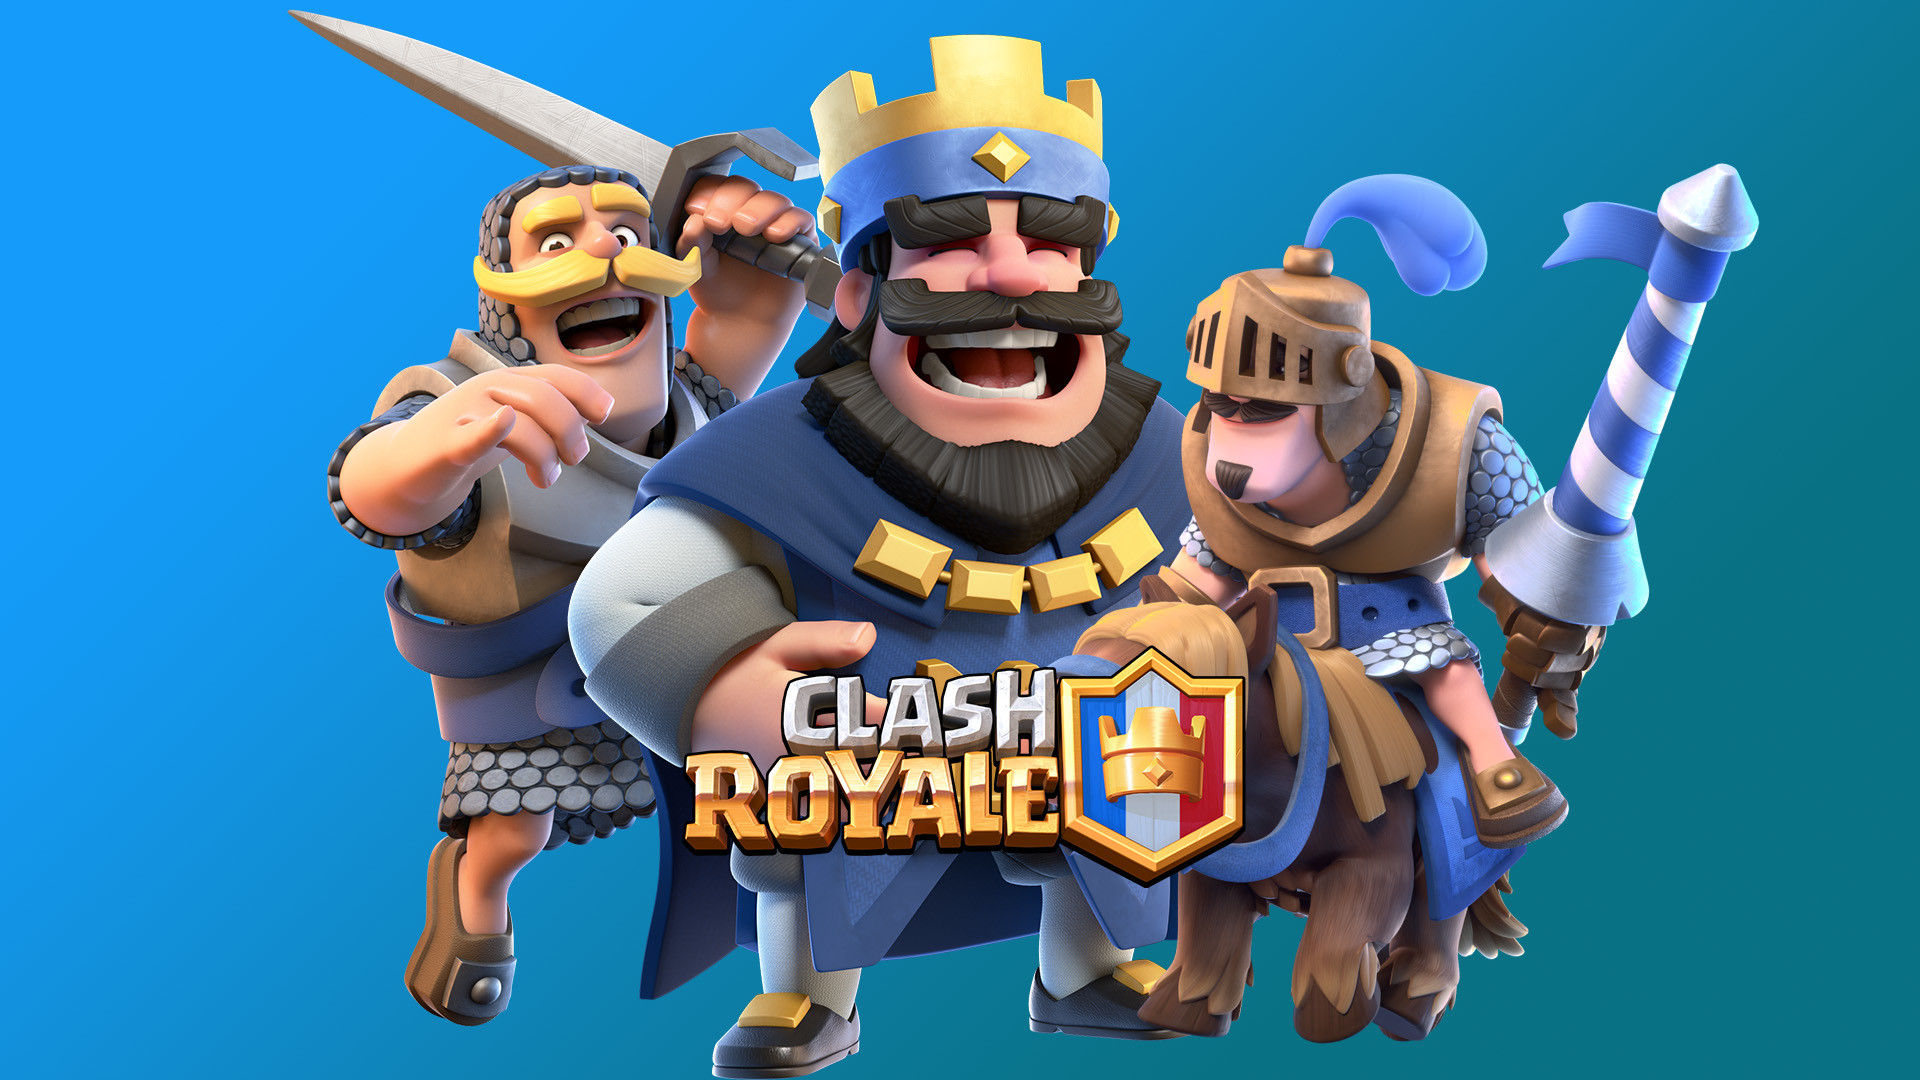 1920x1080 Clash Royale bonito Wallpapers HD